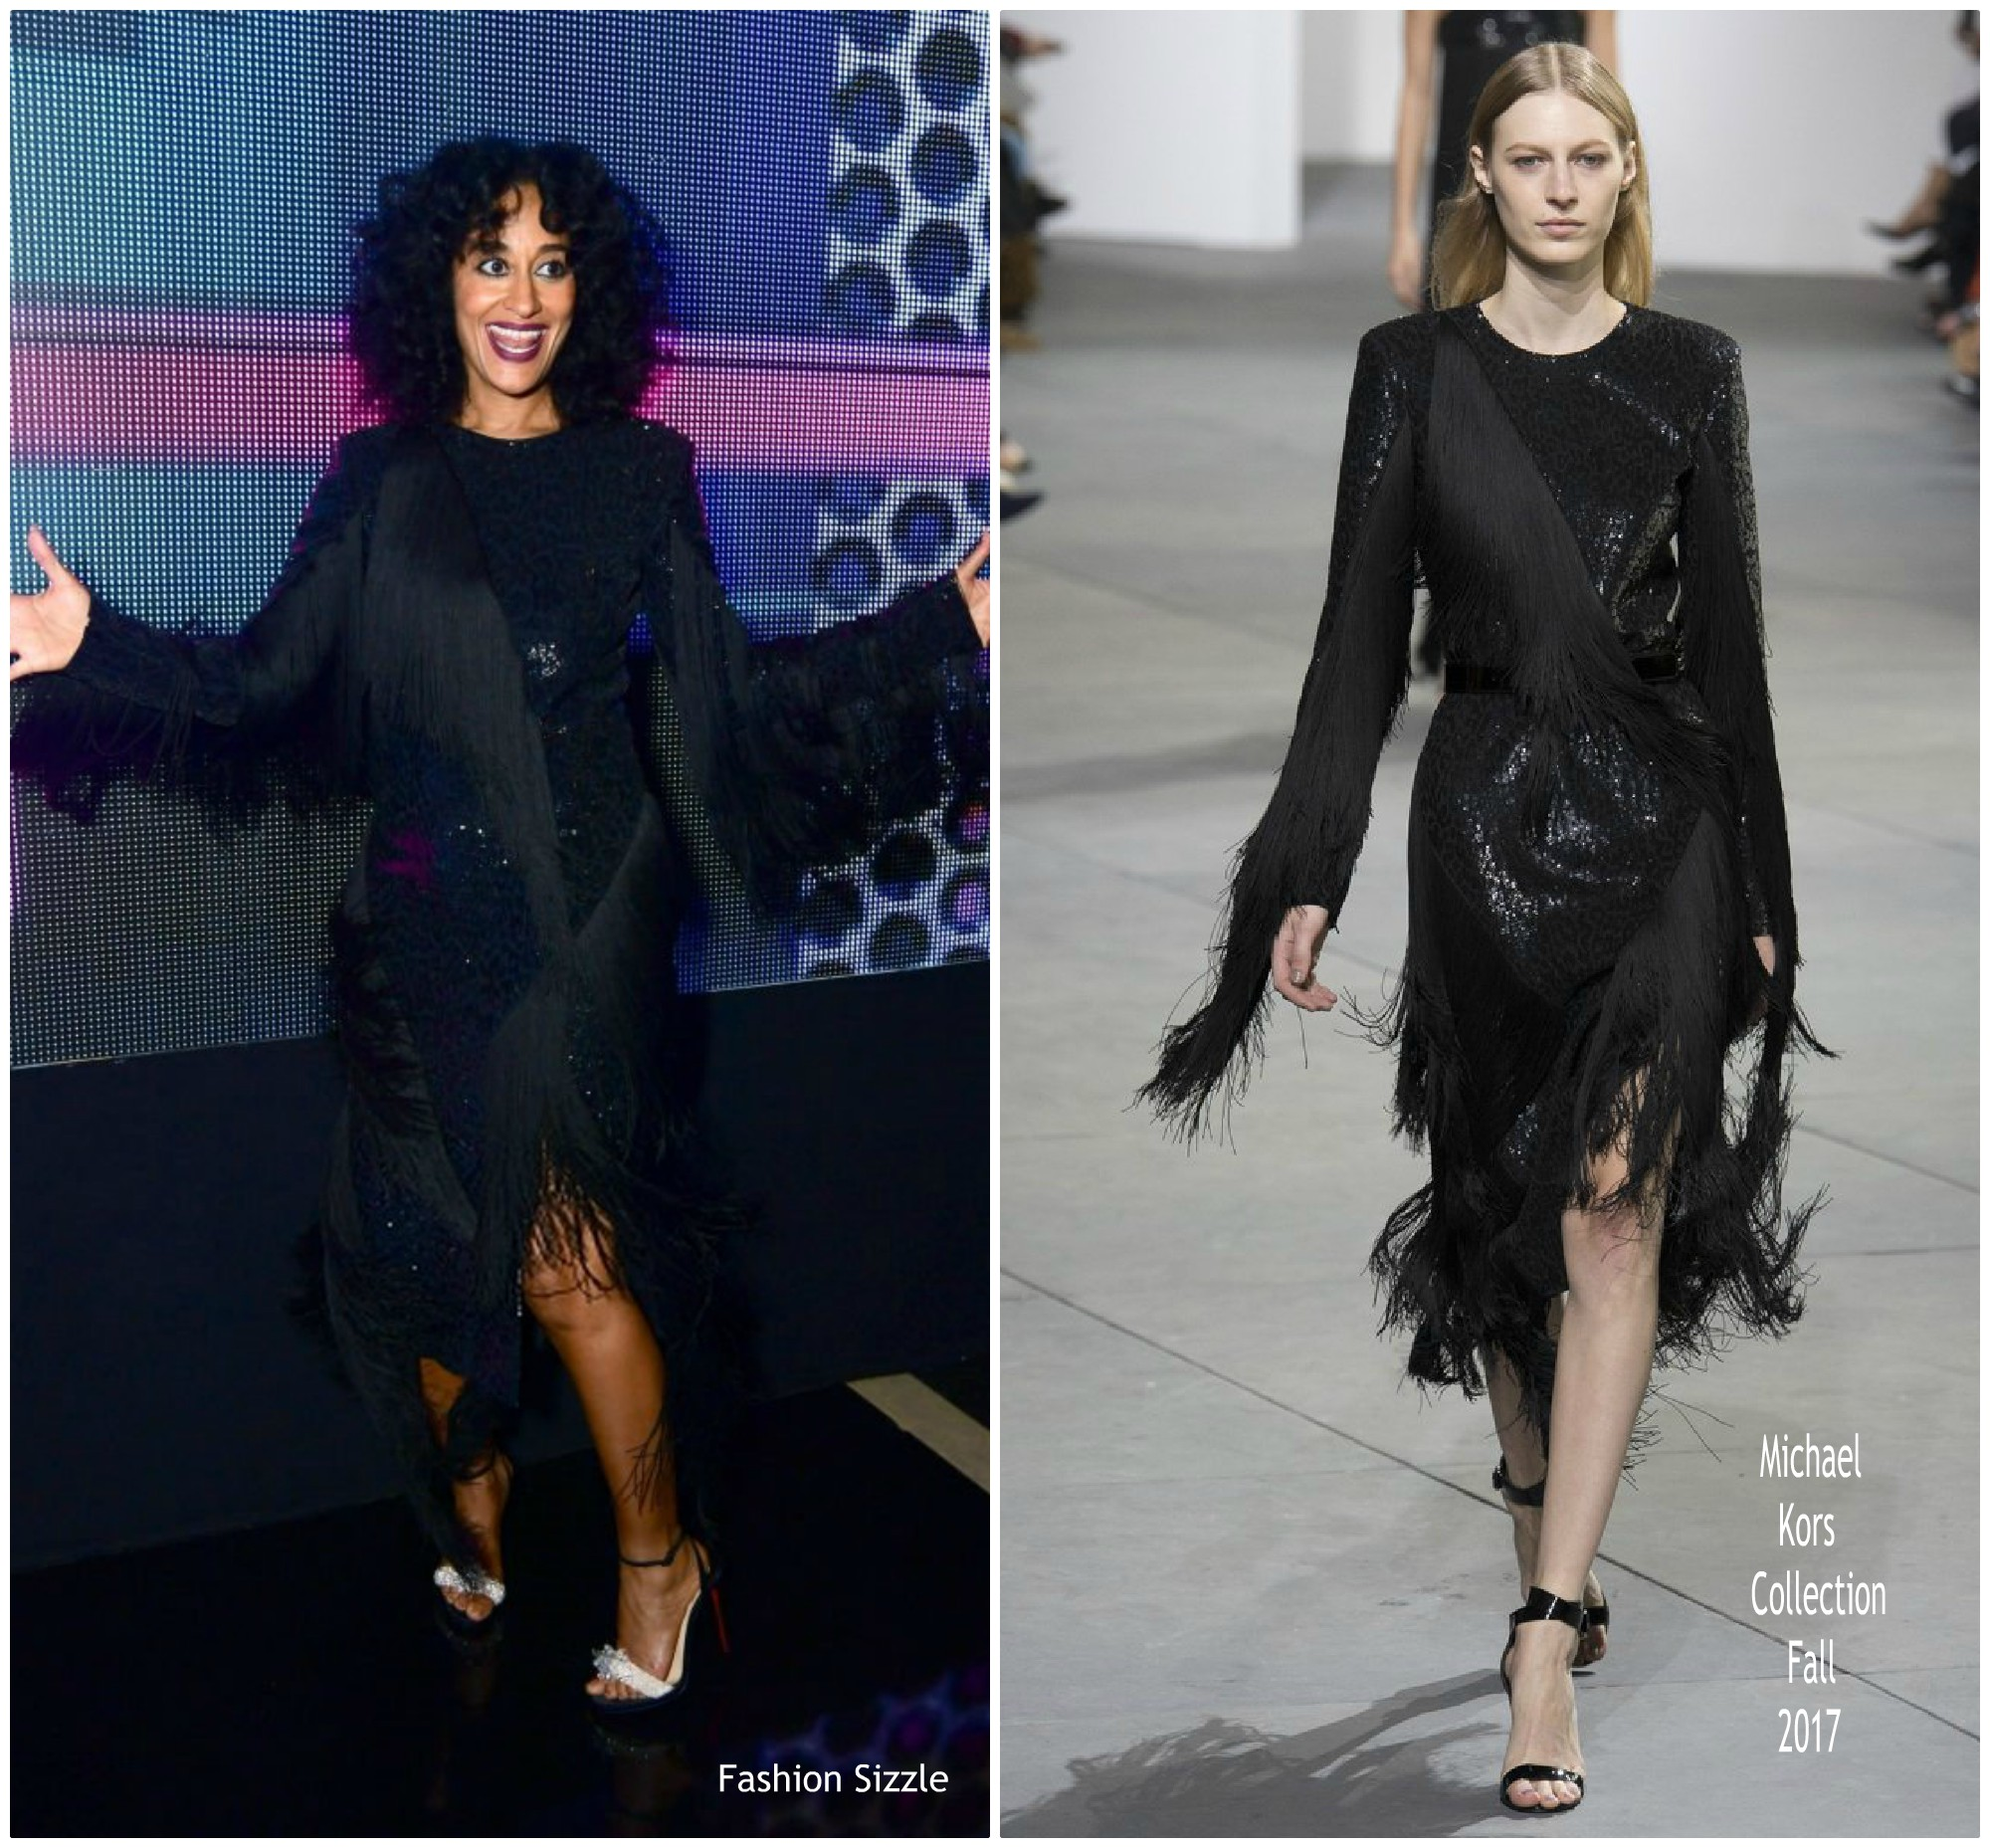 tracee-ellis-ross-in-michael-kors-collection-2017-american-music-awards